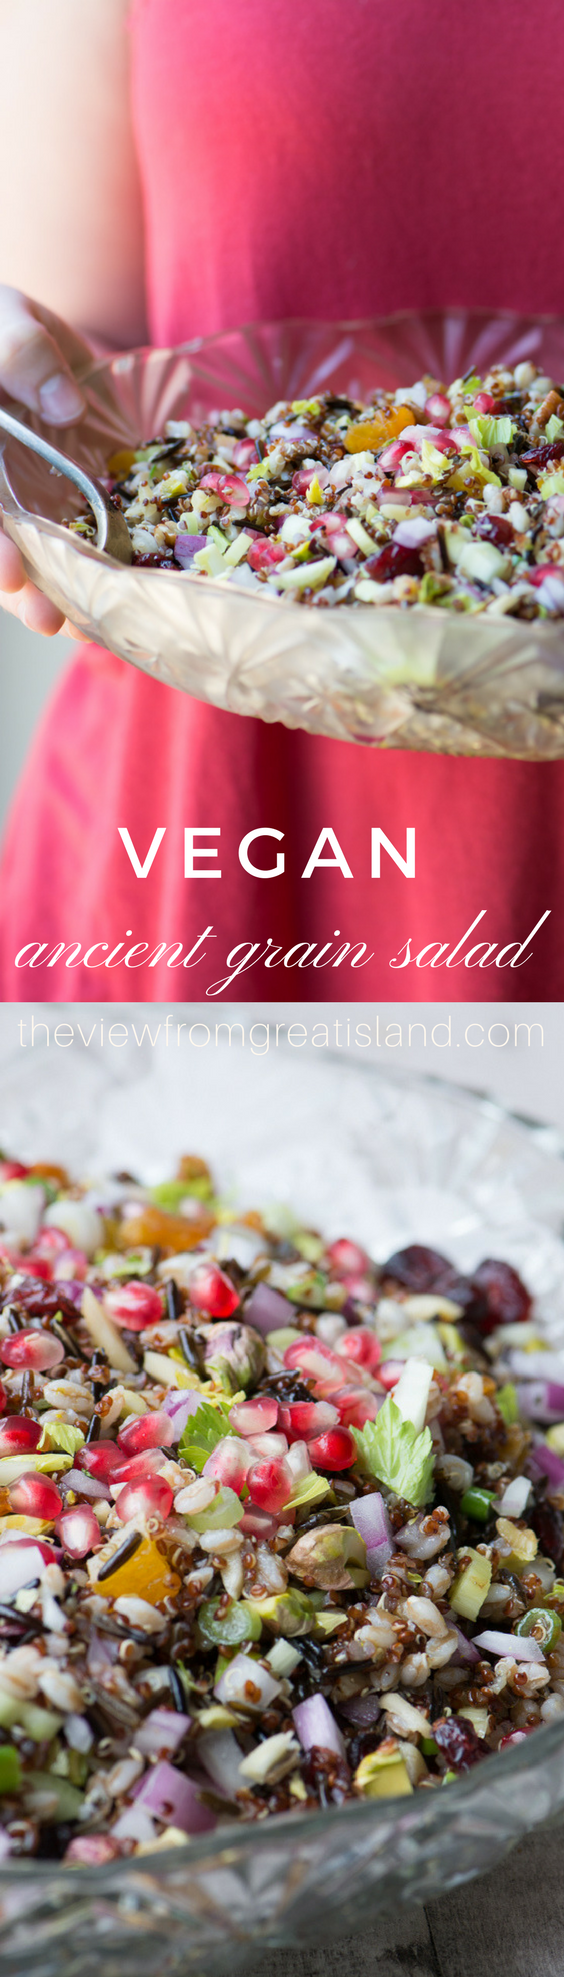 This pretty vegan Ancient Grain Salad is so versatile, it goes from holiday table to working lunch without skipping a beat, and it's as healthy as it is stunning. #salad #ancientgrains #grainsalad #healthysalad #fallsalad #holidaysalad Thanksgivingsalad #Christmassalad #wintersalad #quinoa #wildrice #farro